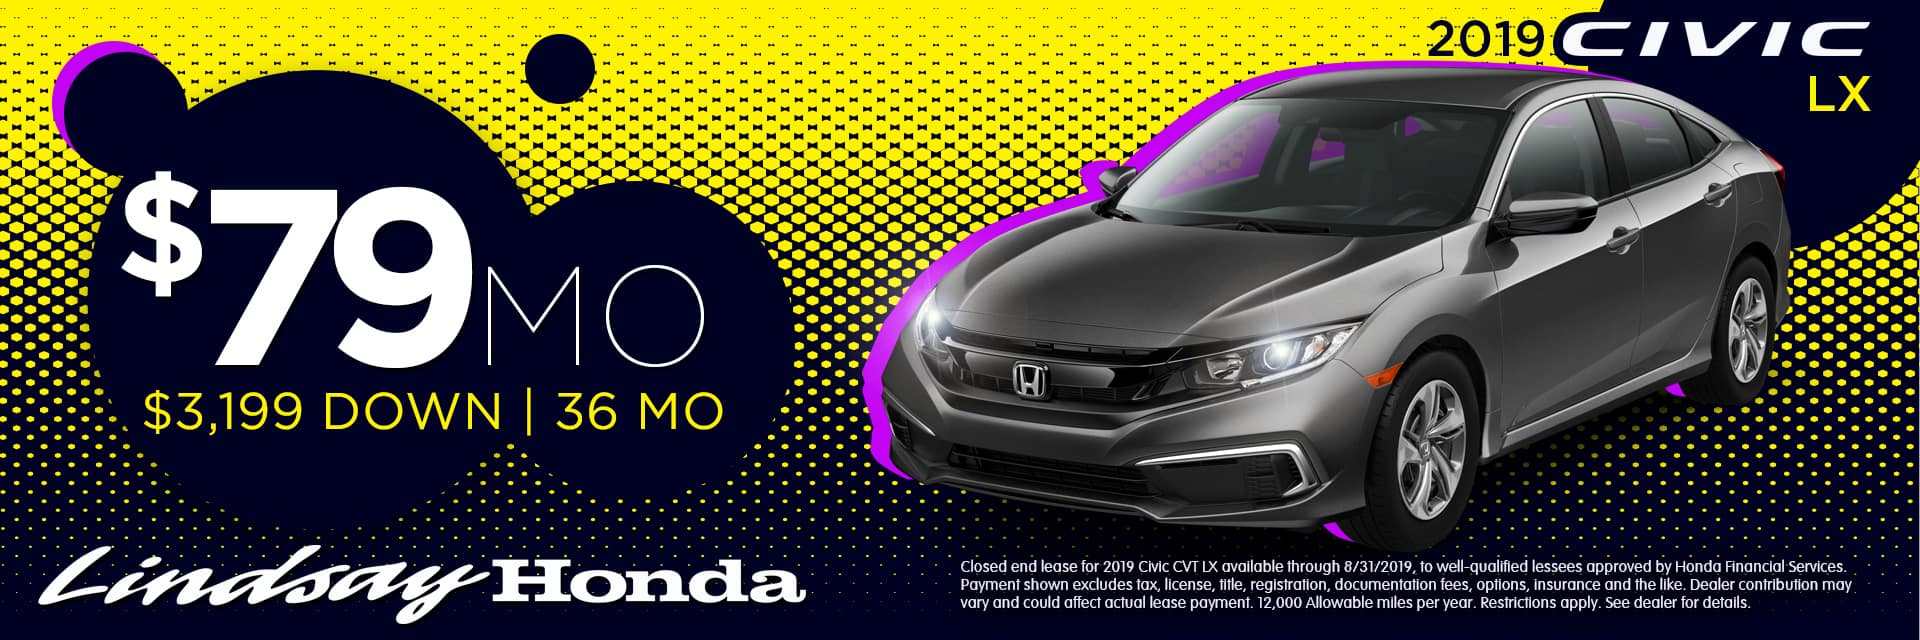 Lindsay Honda | Honda Dealer in Columbus, OH